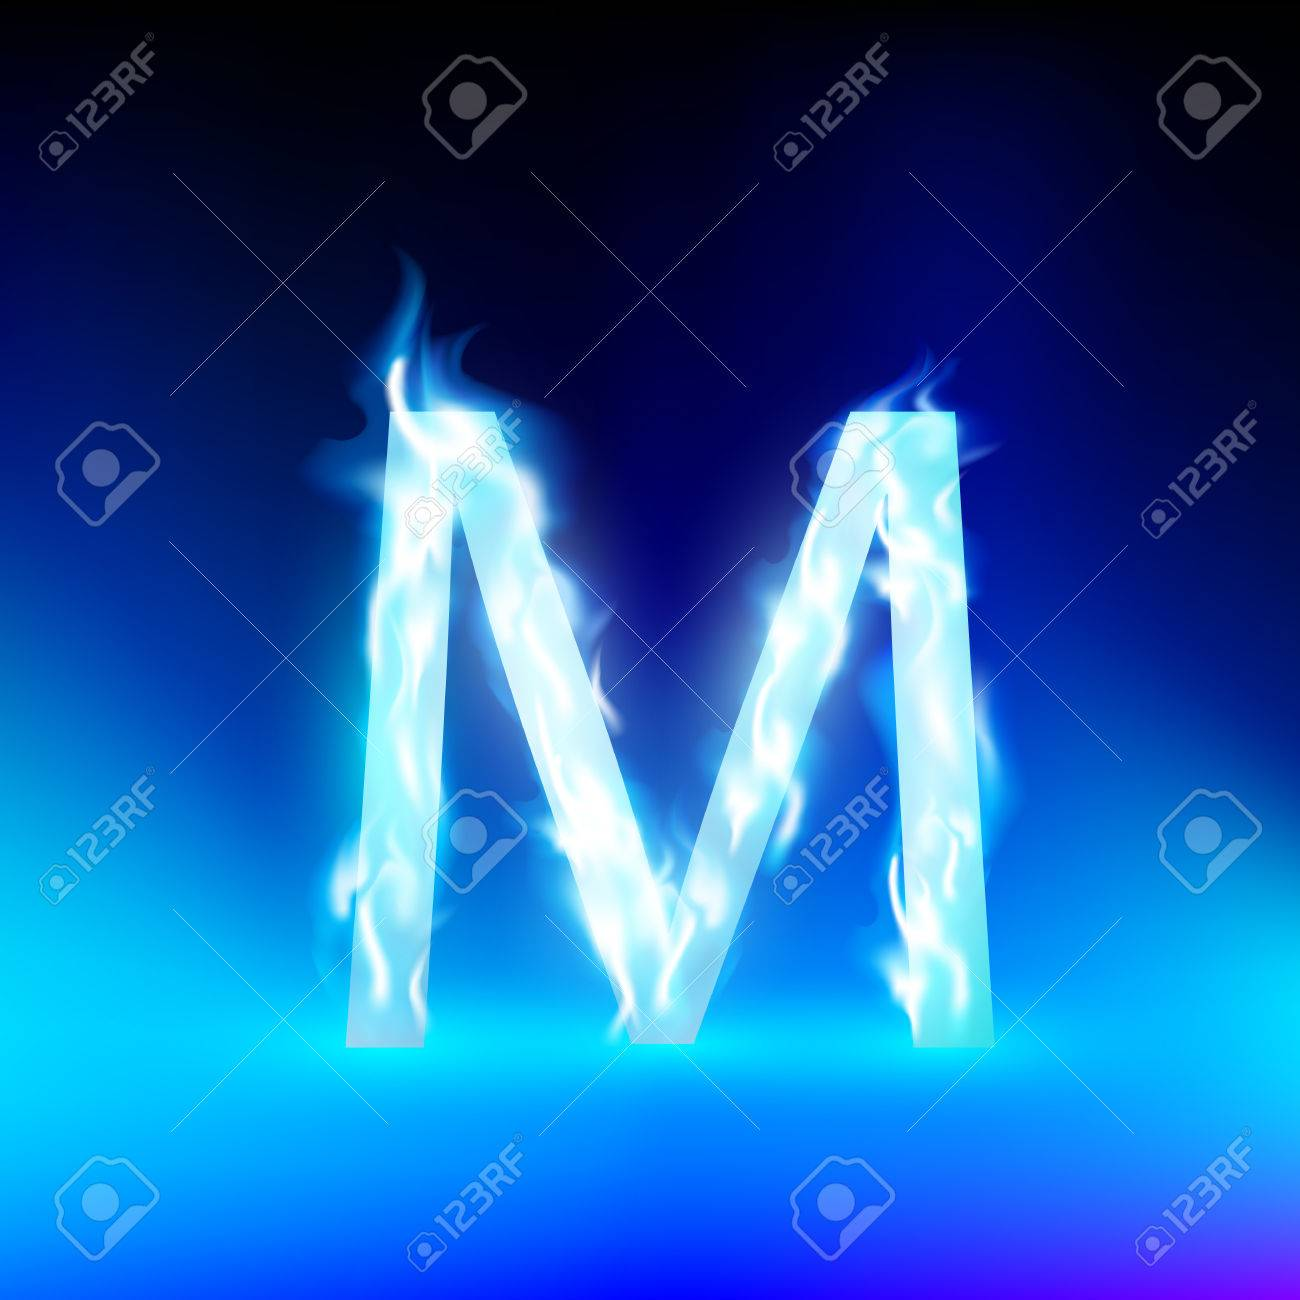 letter m with blue fire royalty free cliparts, vectors, and stock